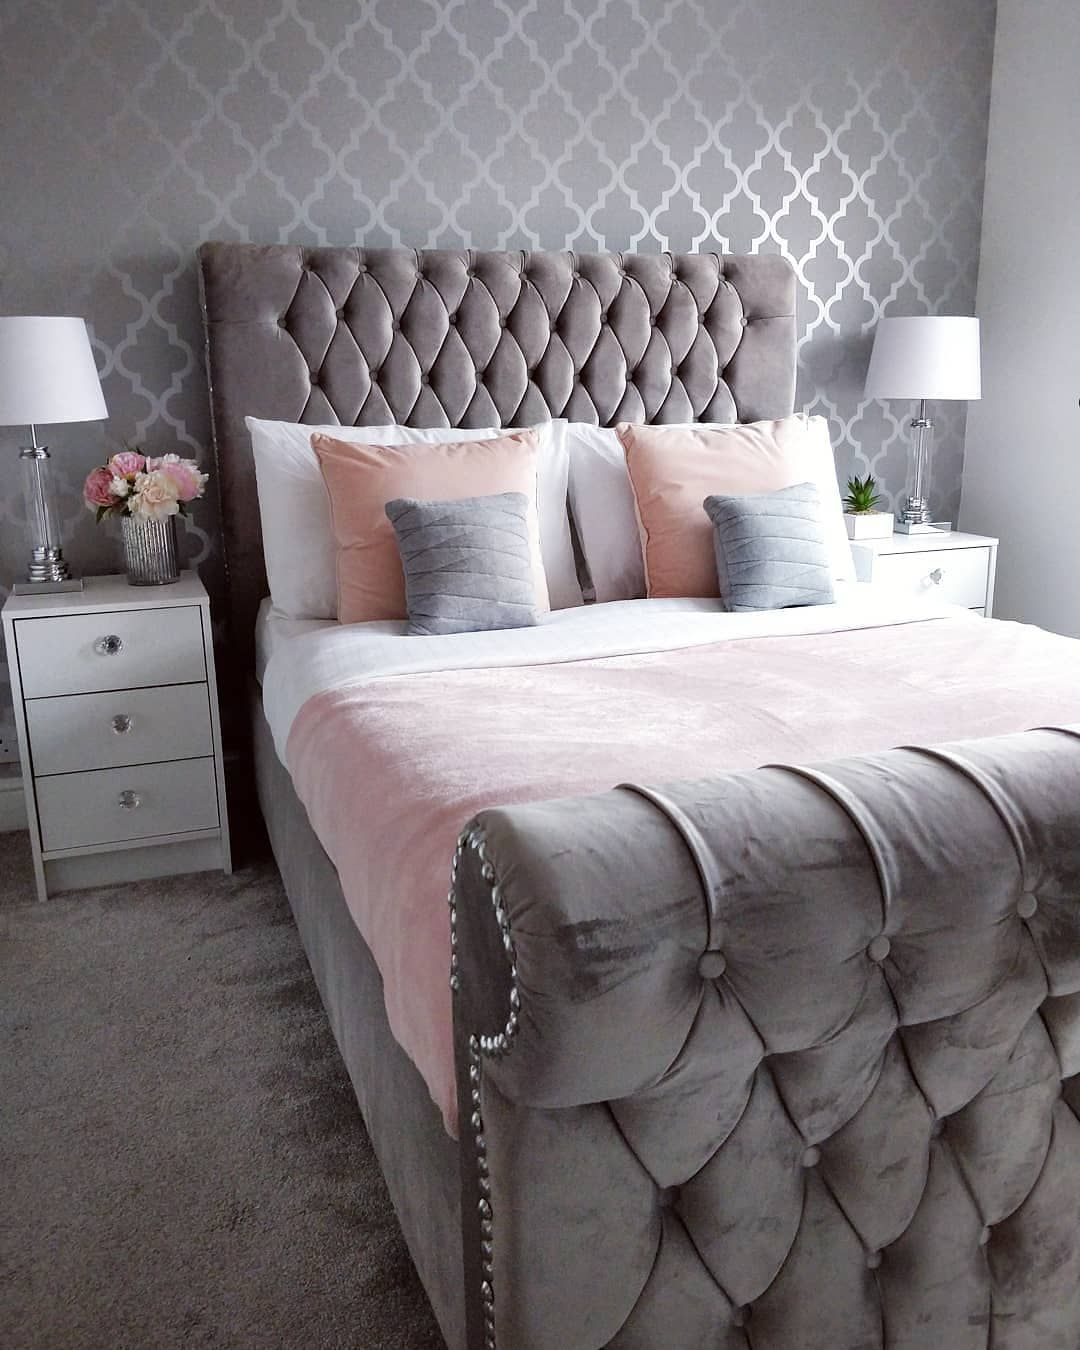 Cute Pink And Grey Bedroom Lo Aring Frac34 Nice In 2019 Pink Gray Bedroom Grey Bedroom Decor Bedroom Decor Grey Pink Pink Bedroom Decor